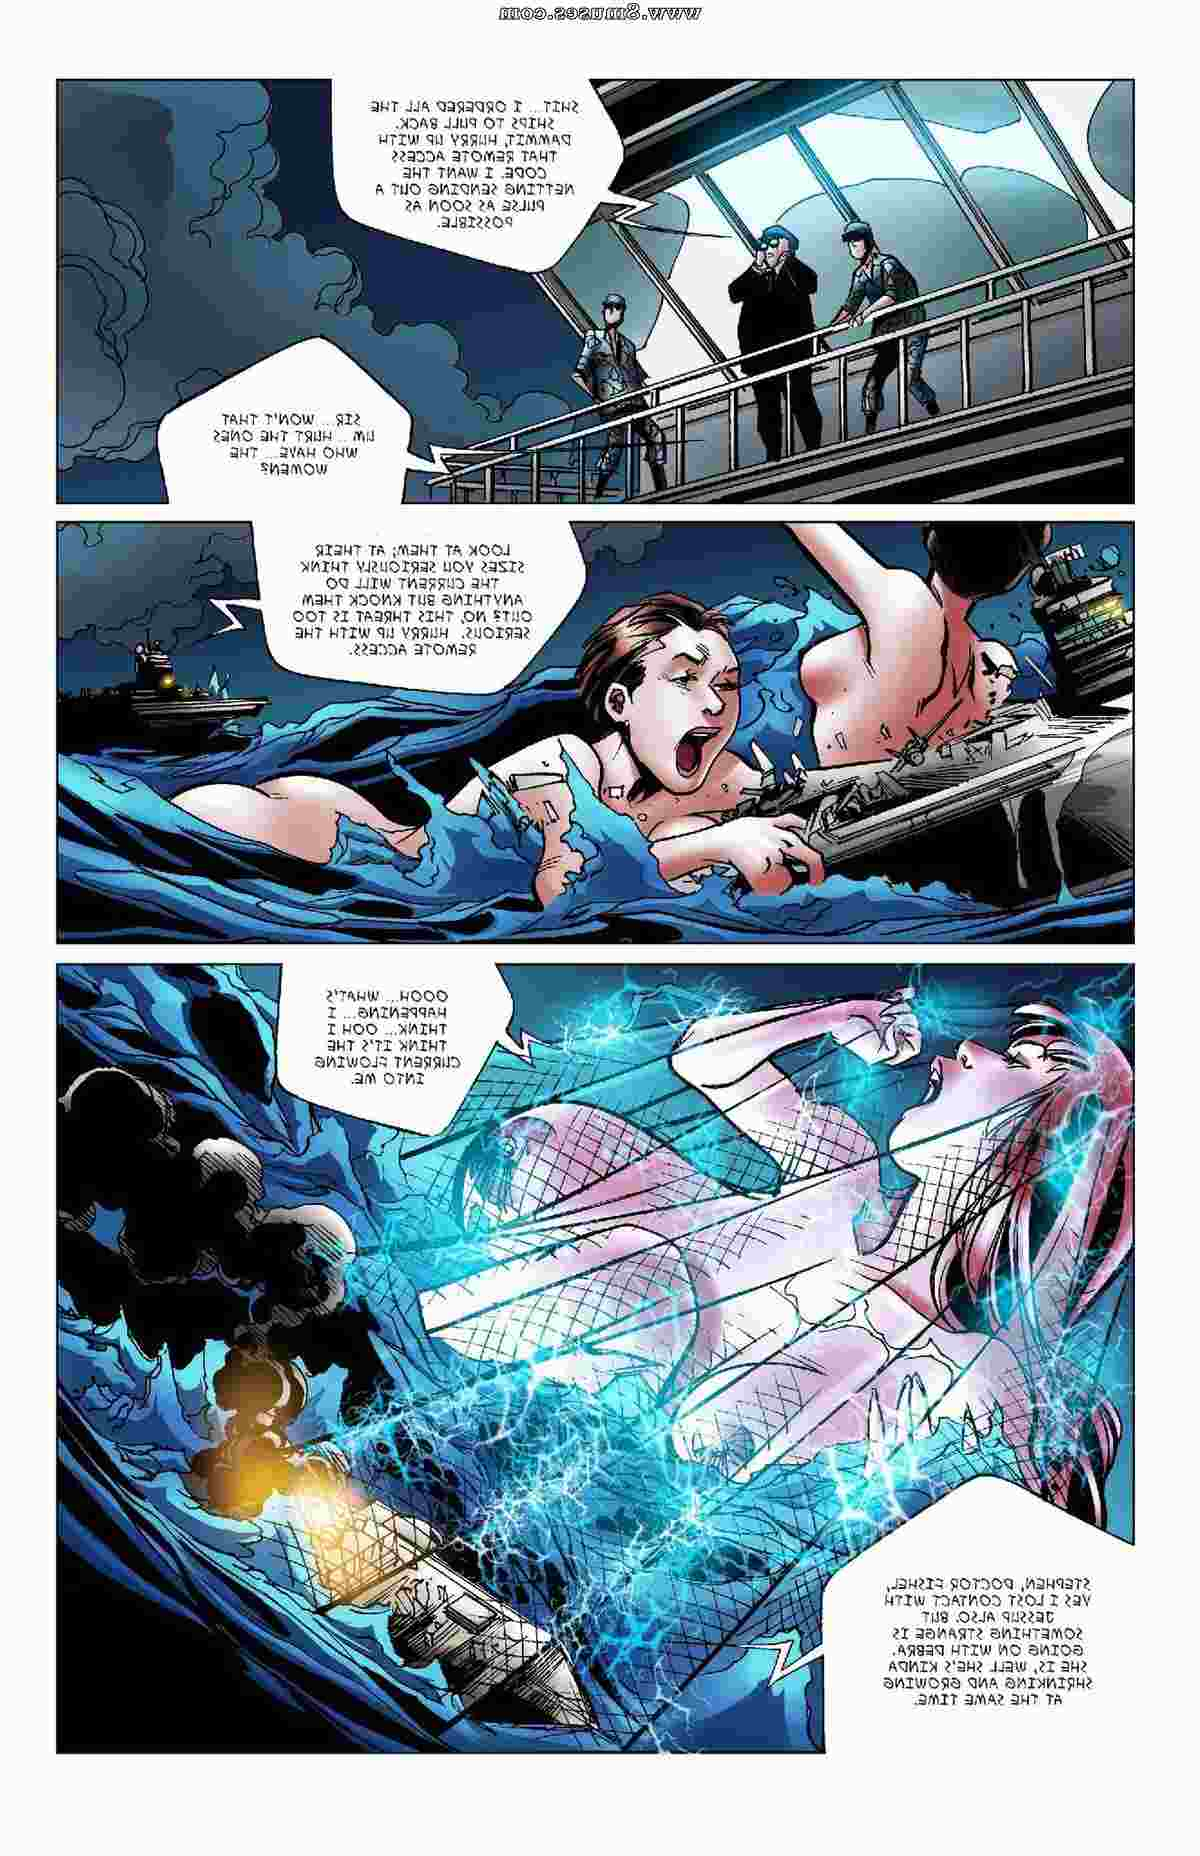 Giantess-Club-Comics/Bubbling-Up-from-the-Abyss Bubbling_Up_from_the_Abyss__8muses_-_Sex_and_Porn_Comics_78.jpg